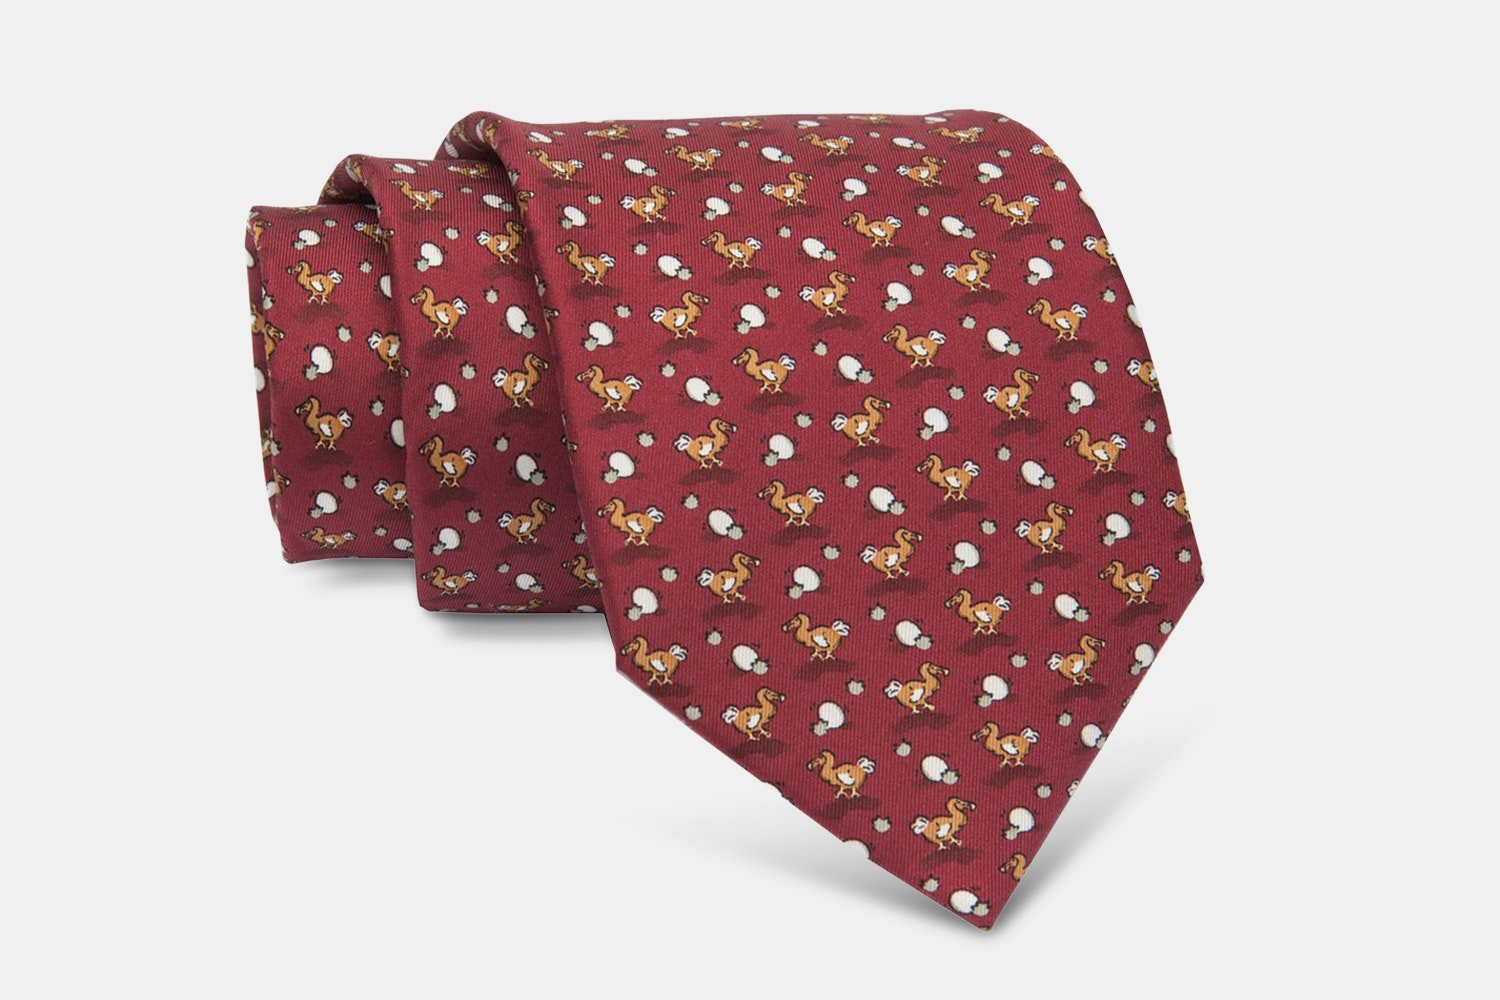 Montauk Ducks Silk Tie, Burgundy/Brown